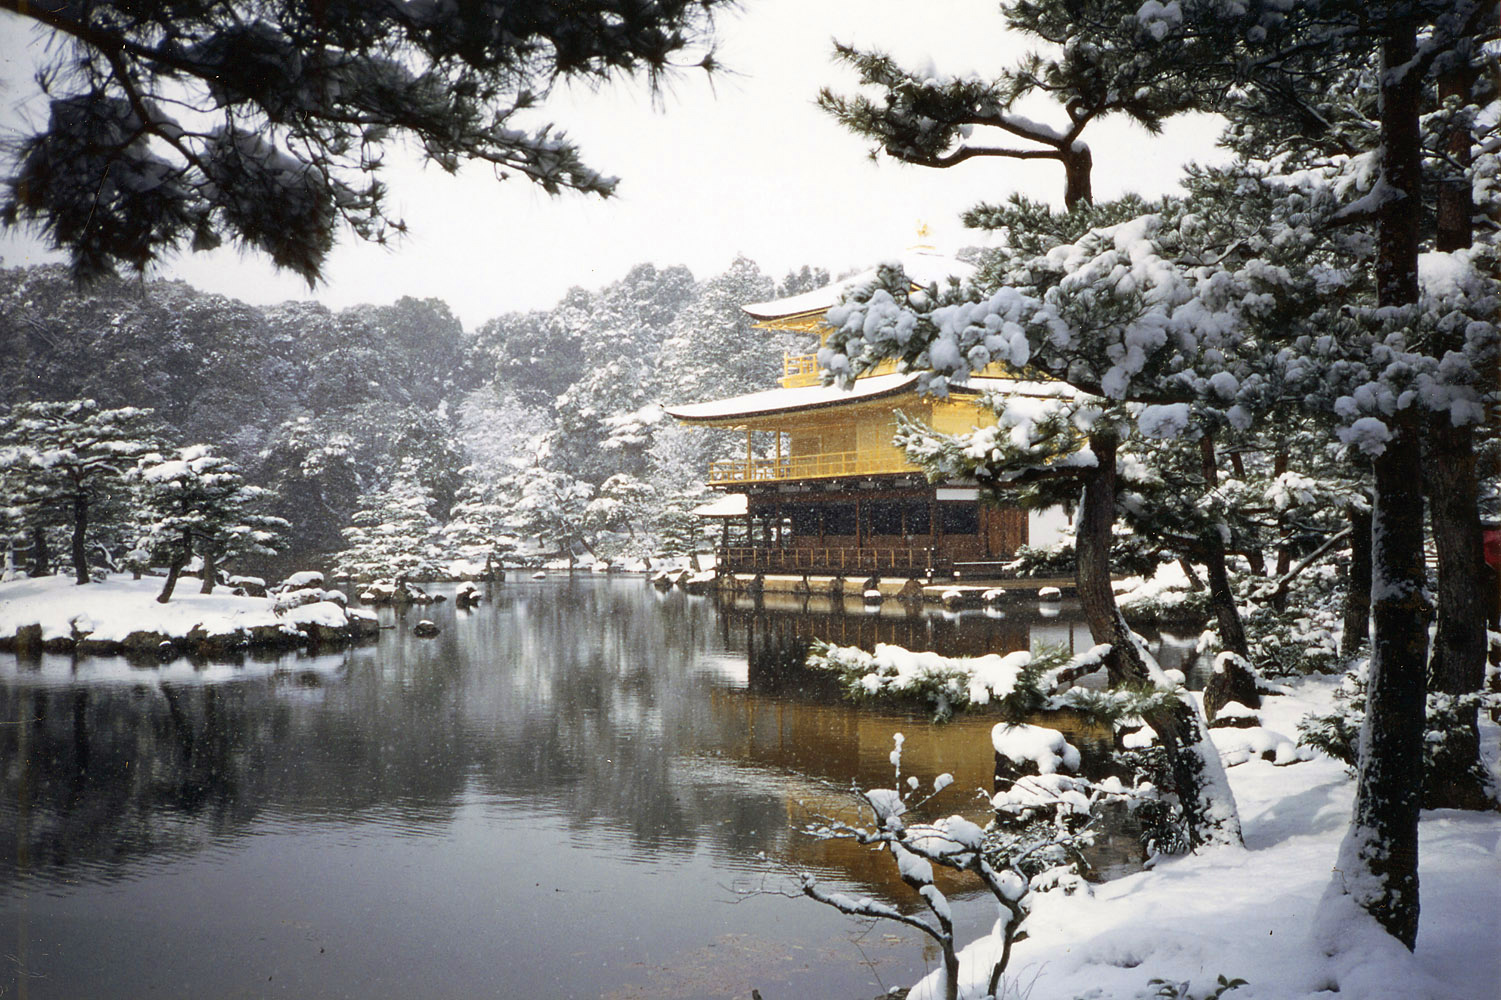 Where to Go Sightseeing in Kyoto: 6 Most Popular Spots